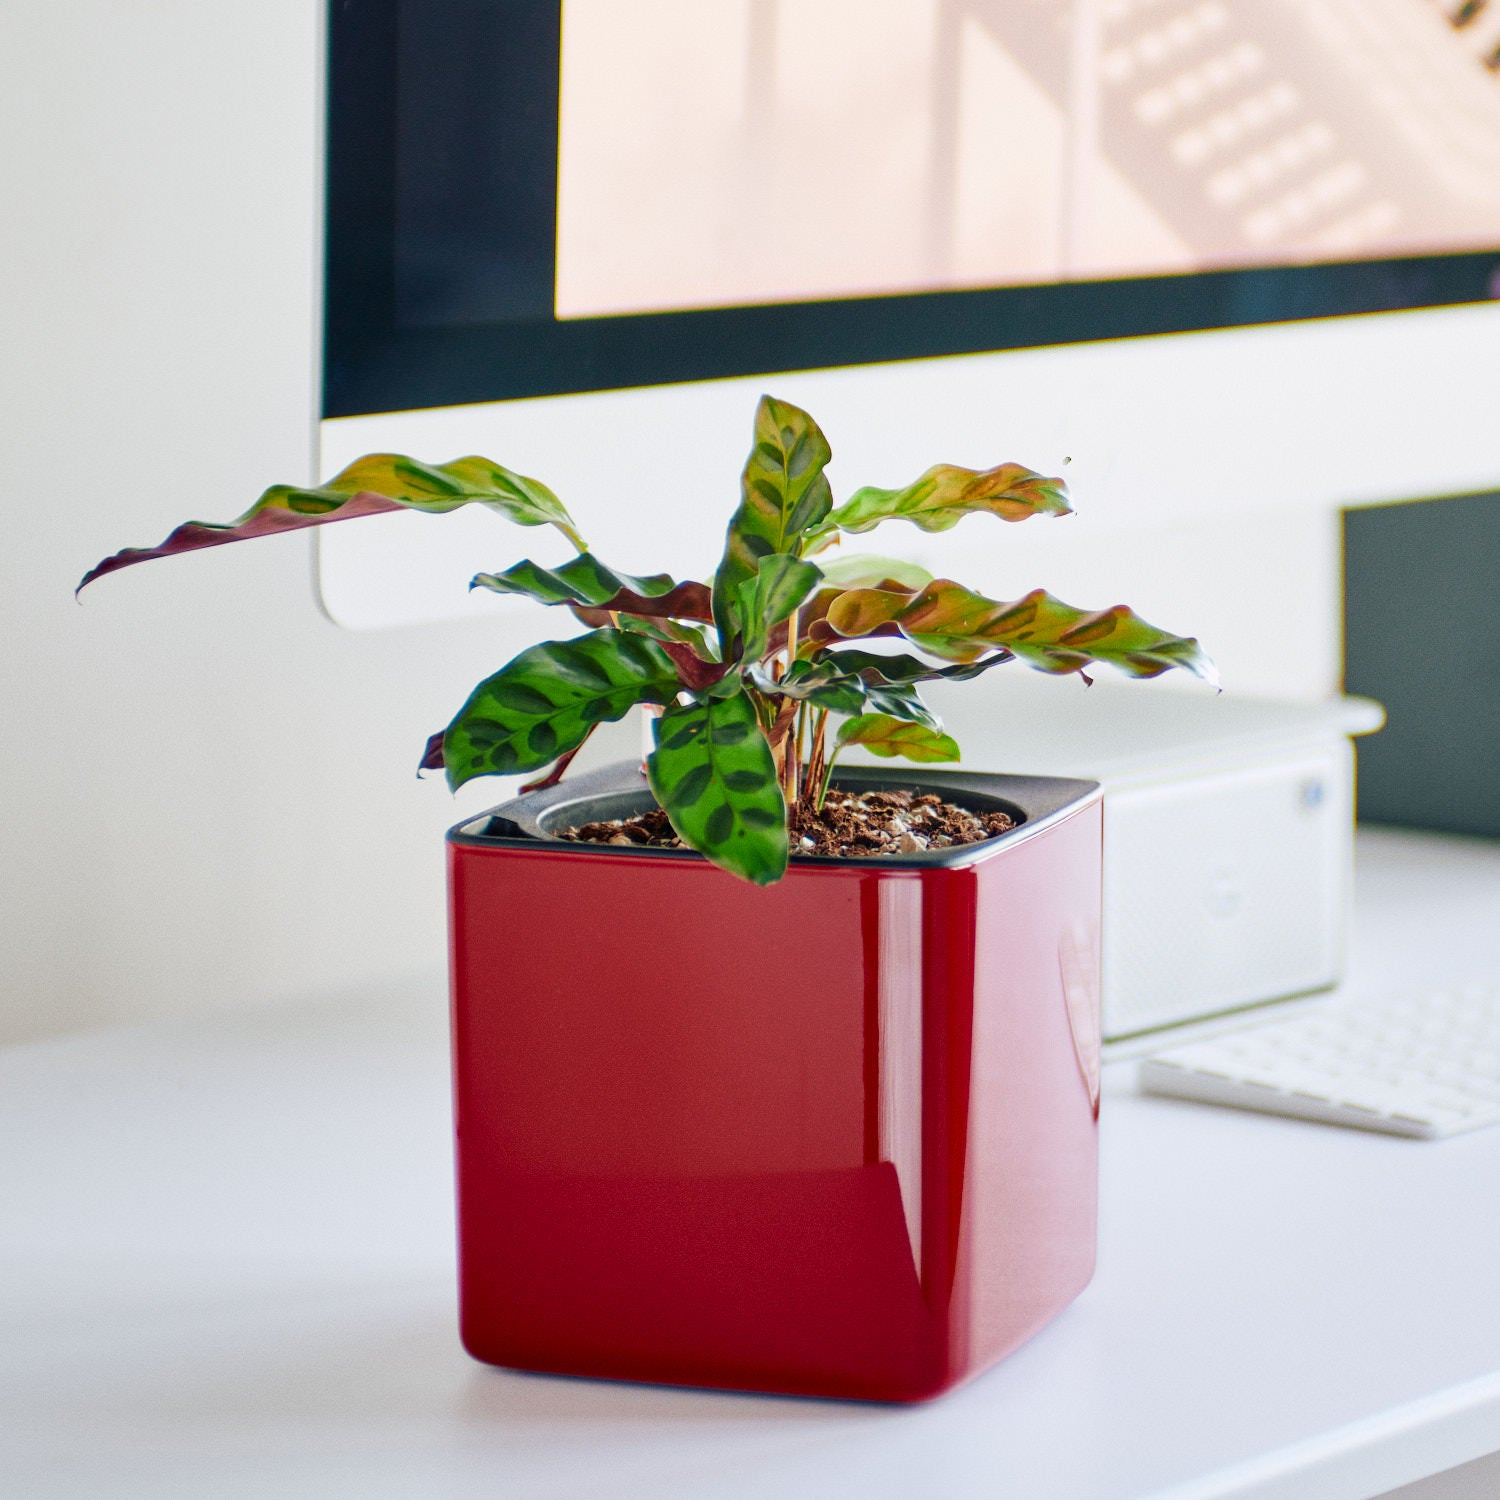 Calathea Potted In Lechuza Cube Glossy Red Planter | My City Plants